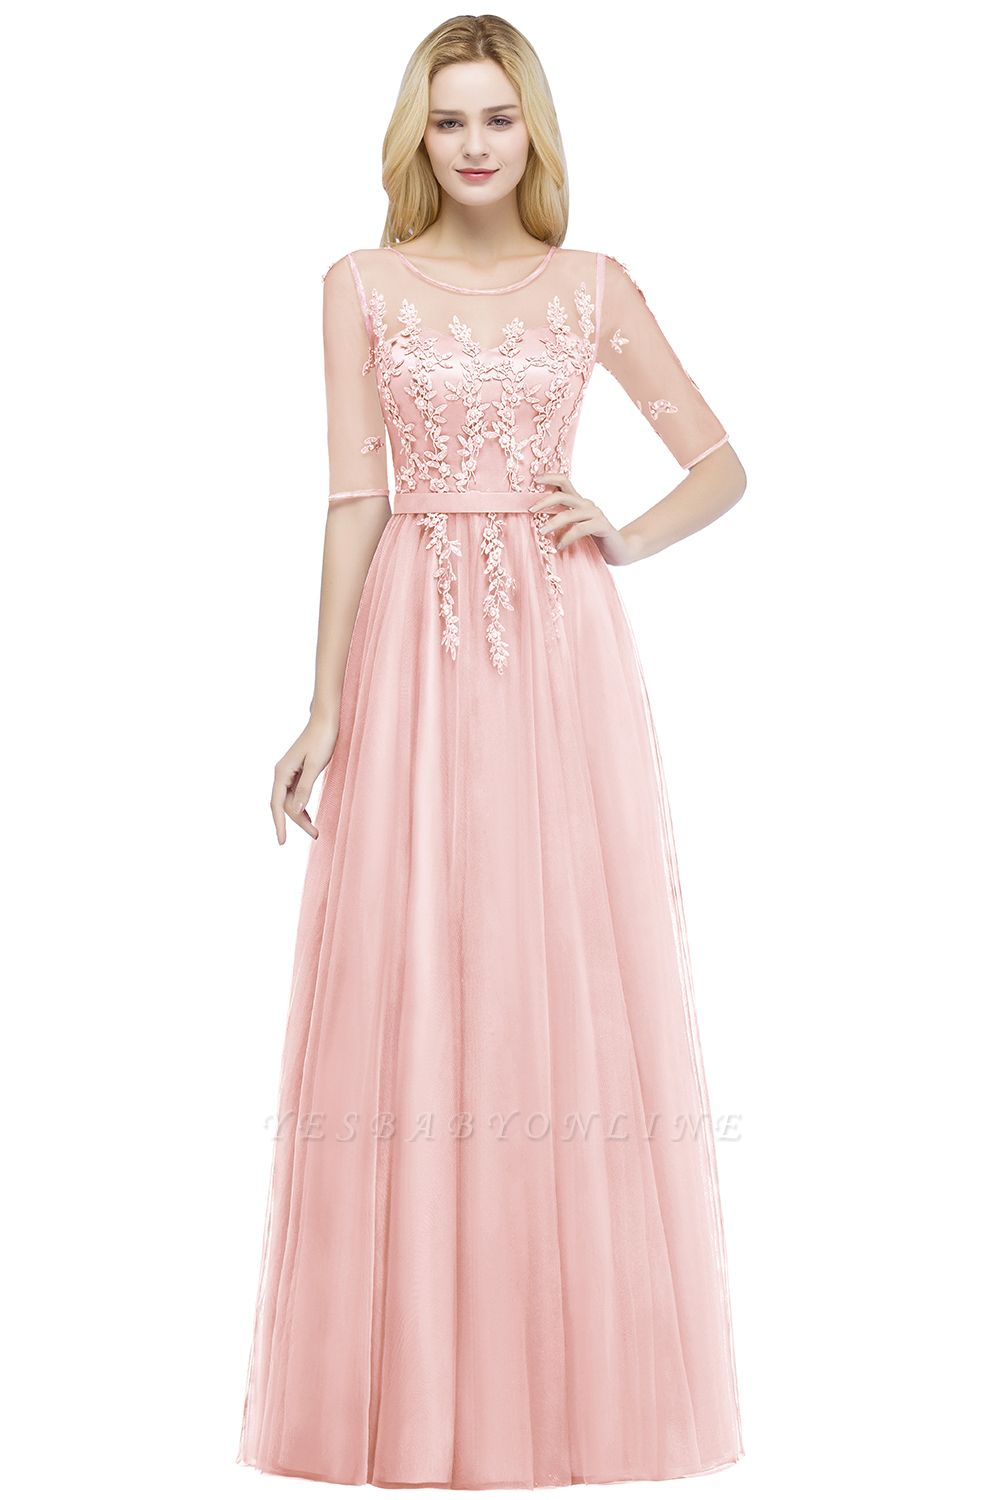 Cheap A-line Floor Length Appliques Tulle Bridesmaid Dress with Sleeves in Stock